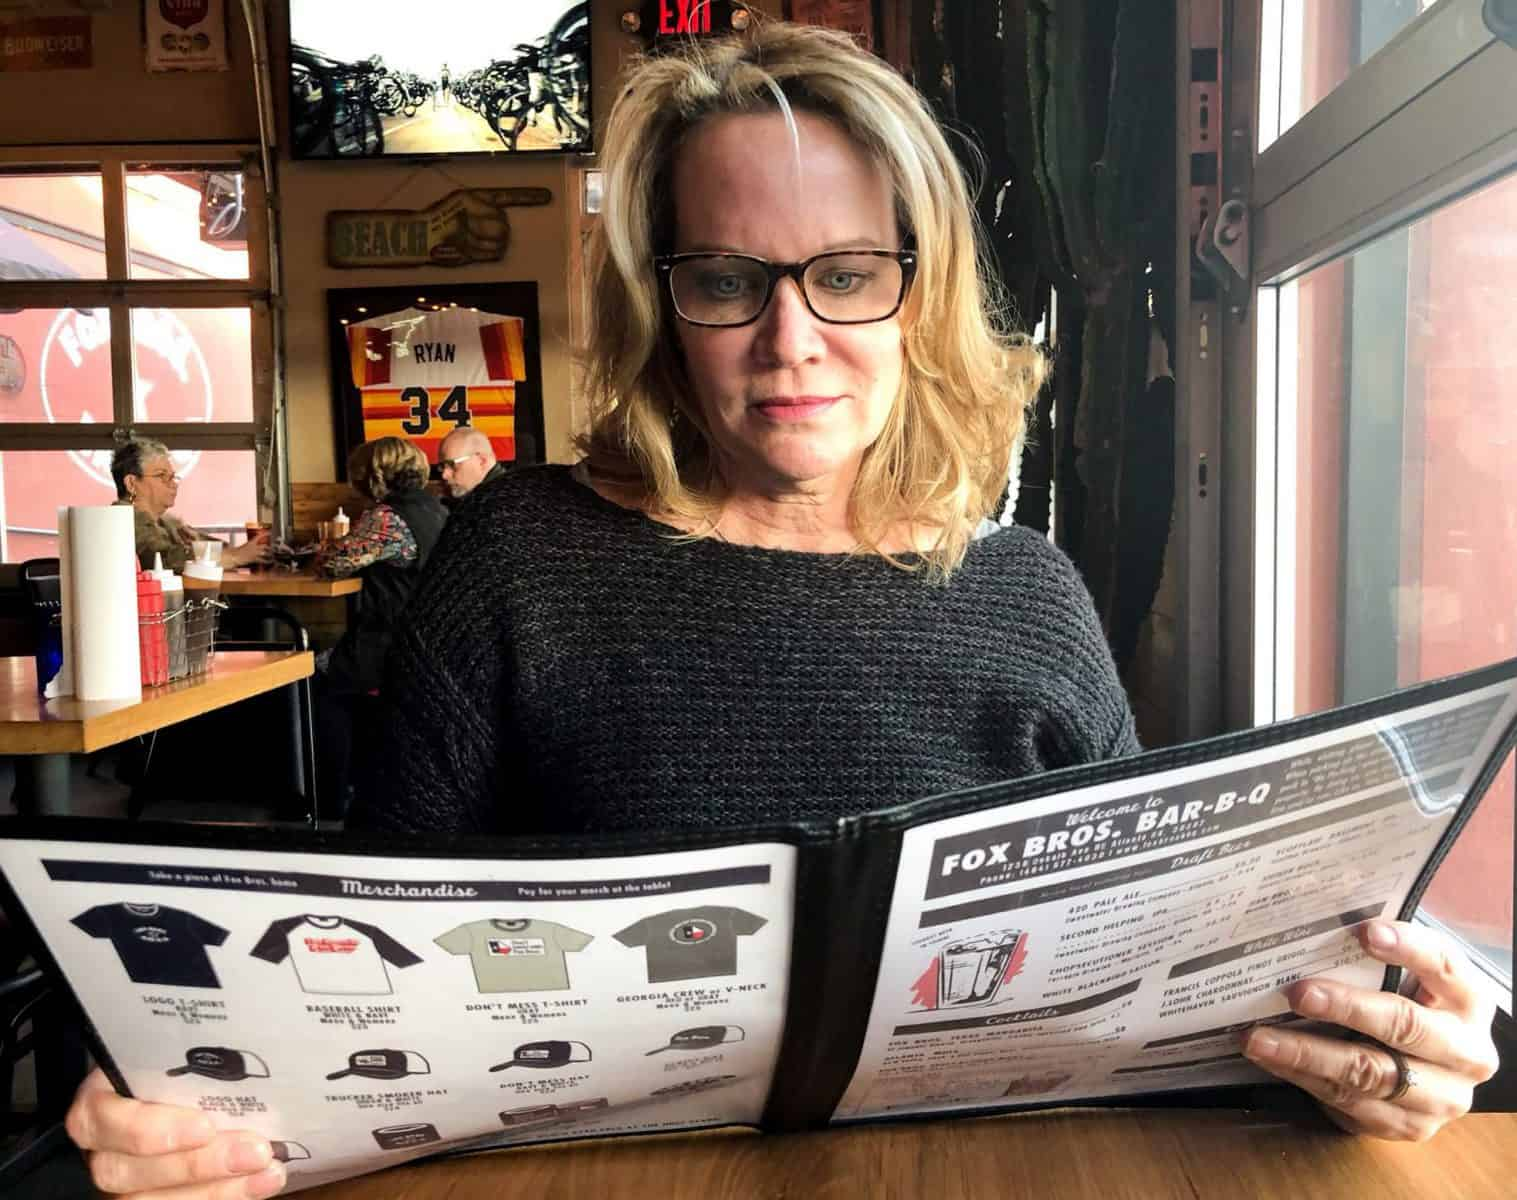 Reading a Menu Becomes Harder as You Get Older